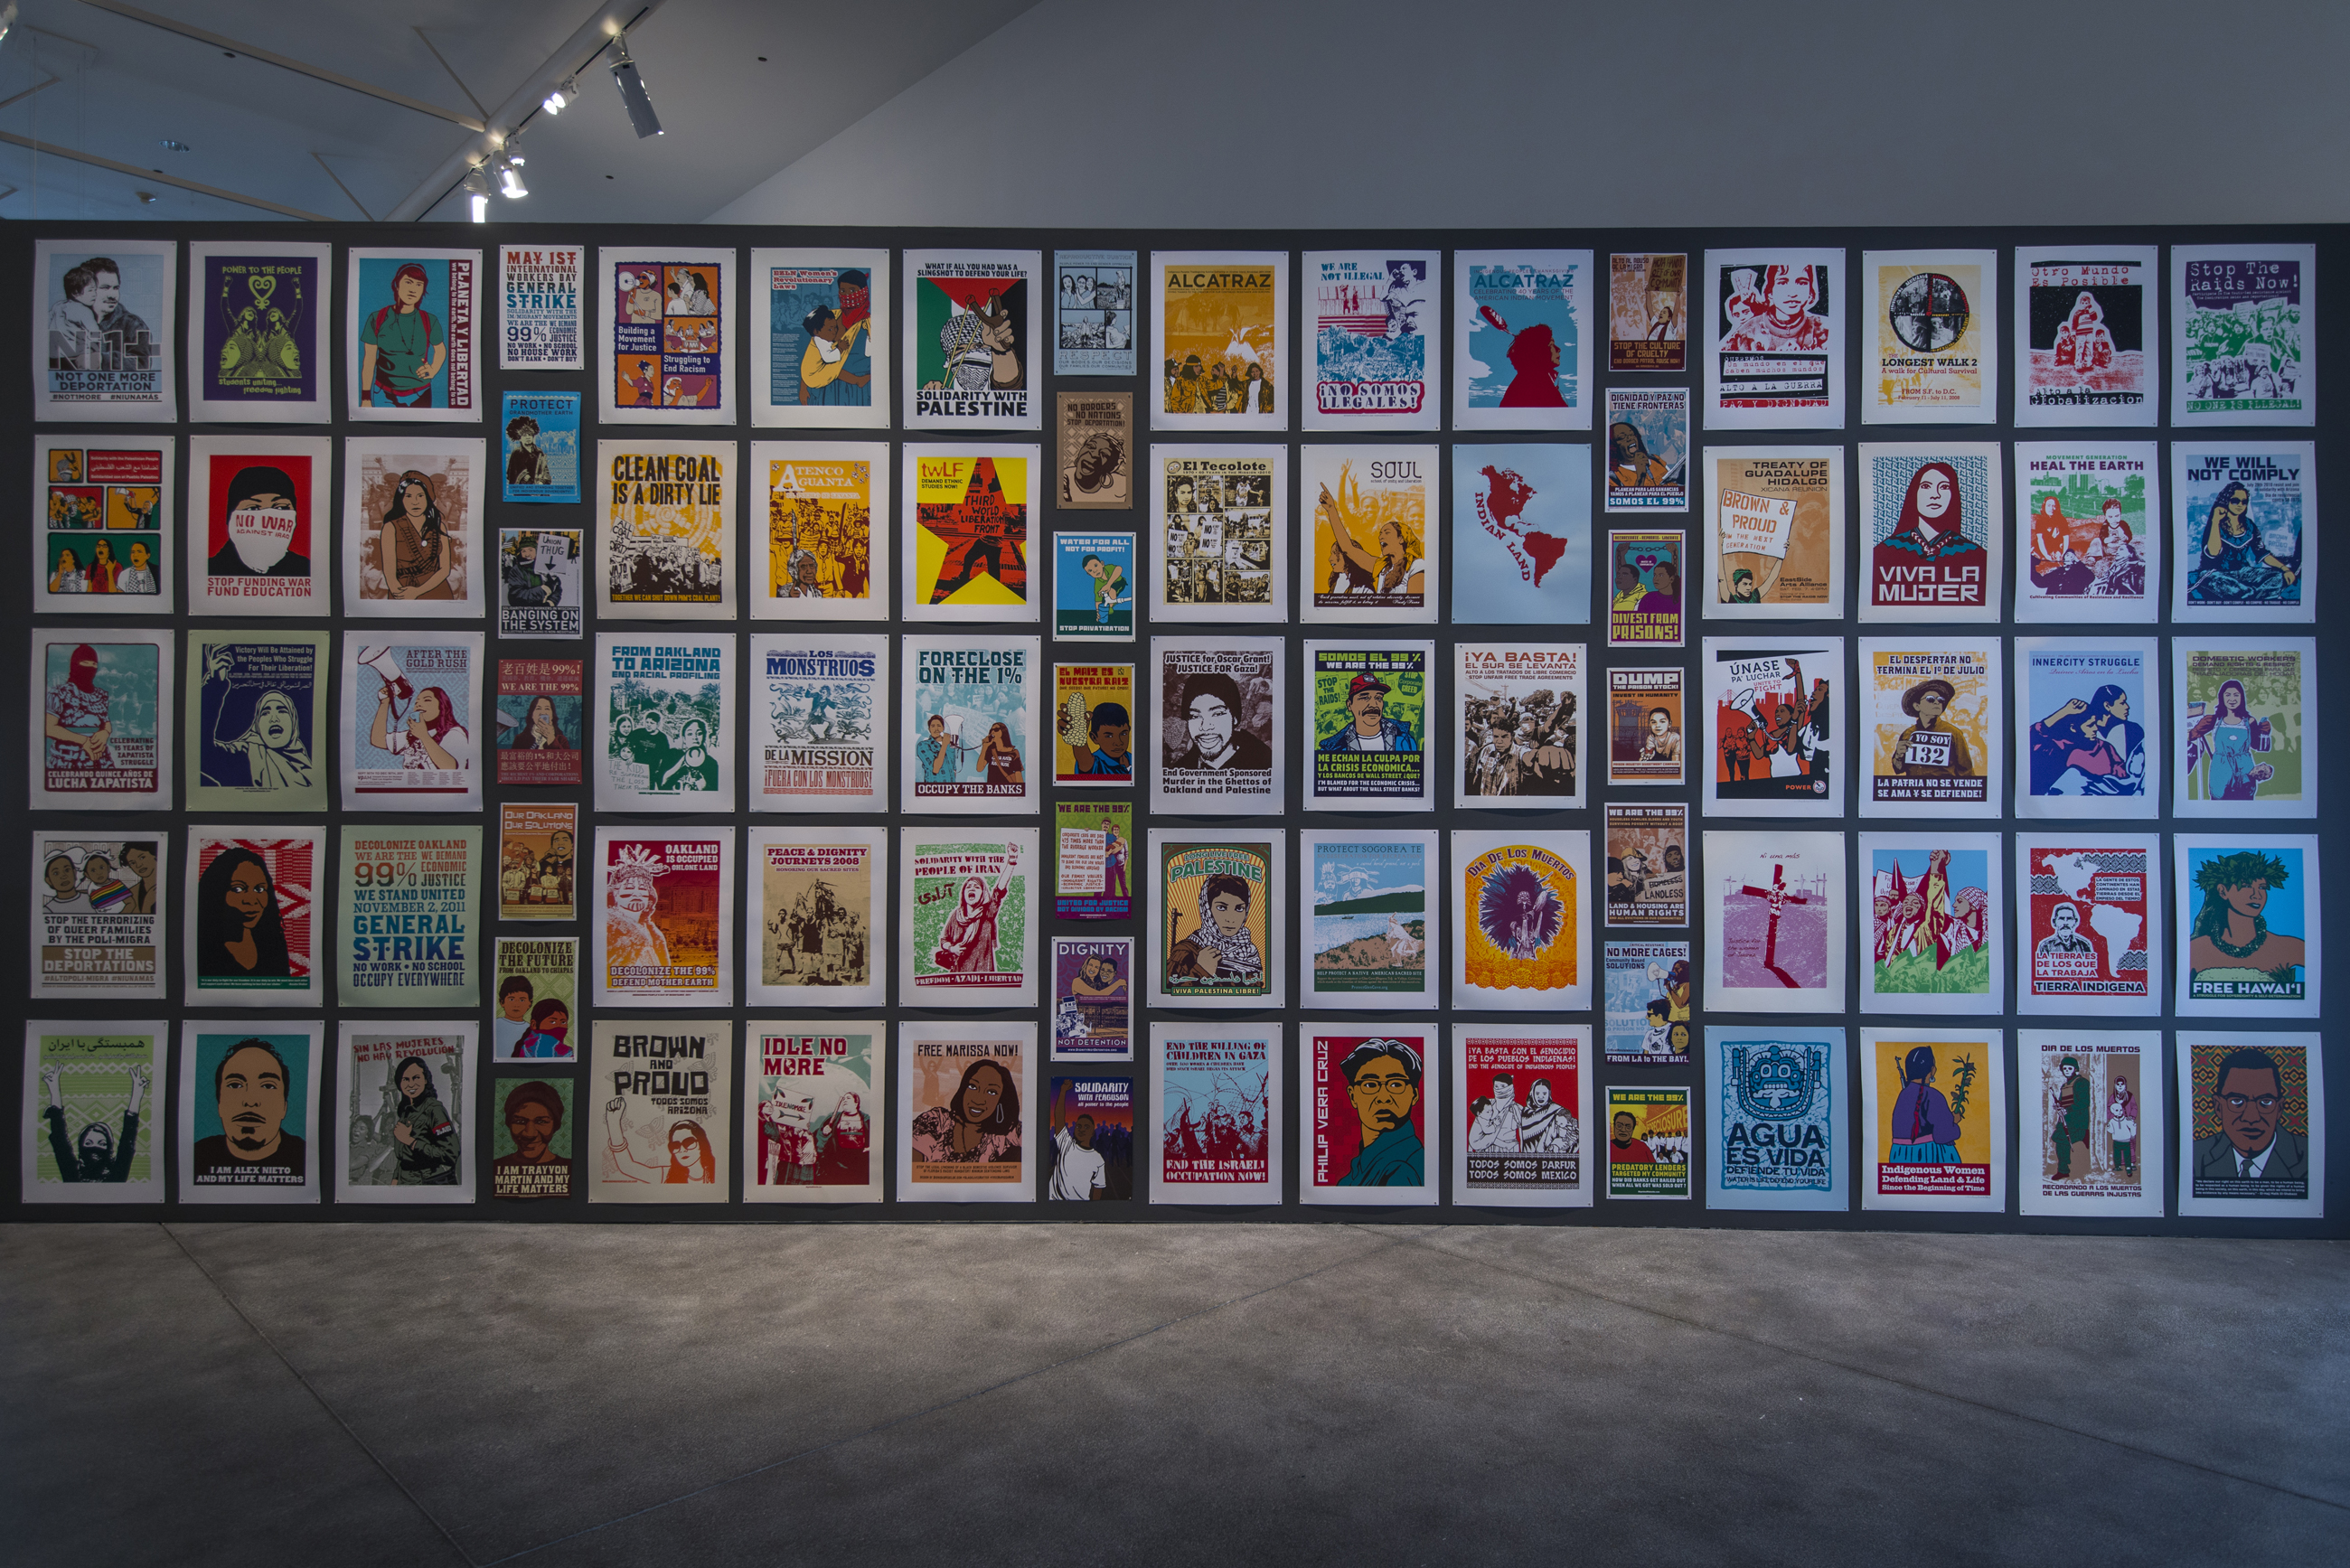 TAKE THIS HAMMER Art + Media Activism from the Bay Area